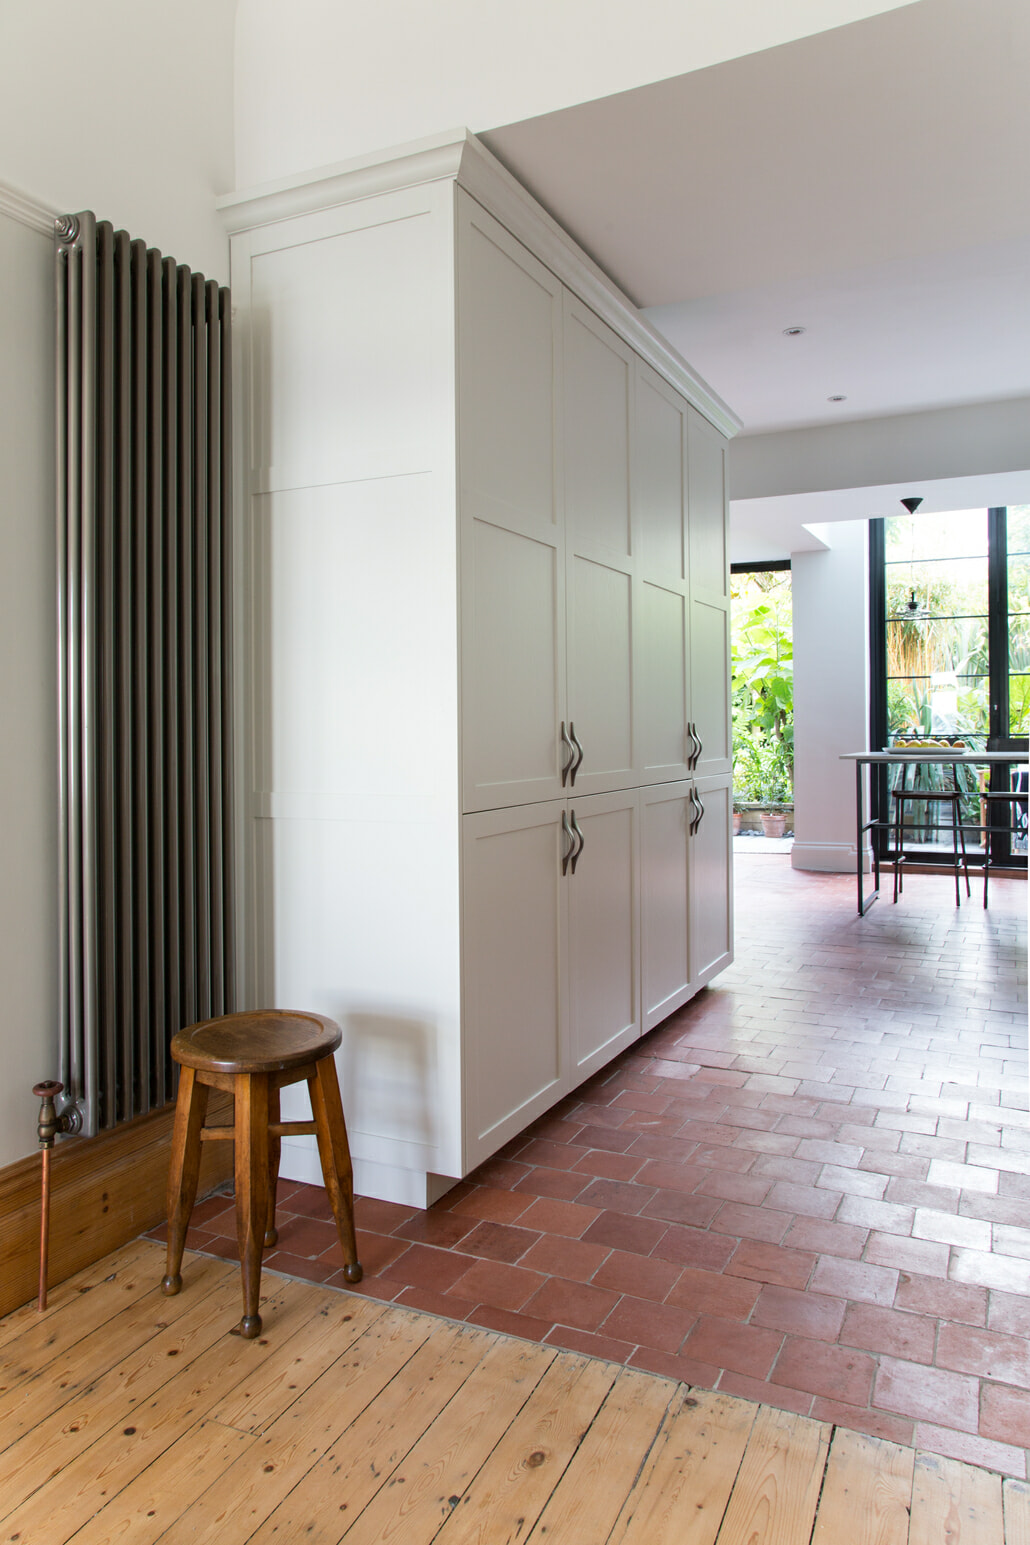 Milano Windsor vertical radiator in a kitchen